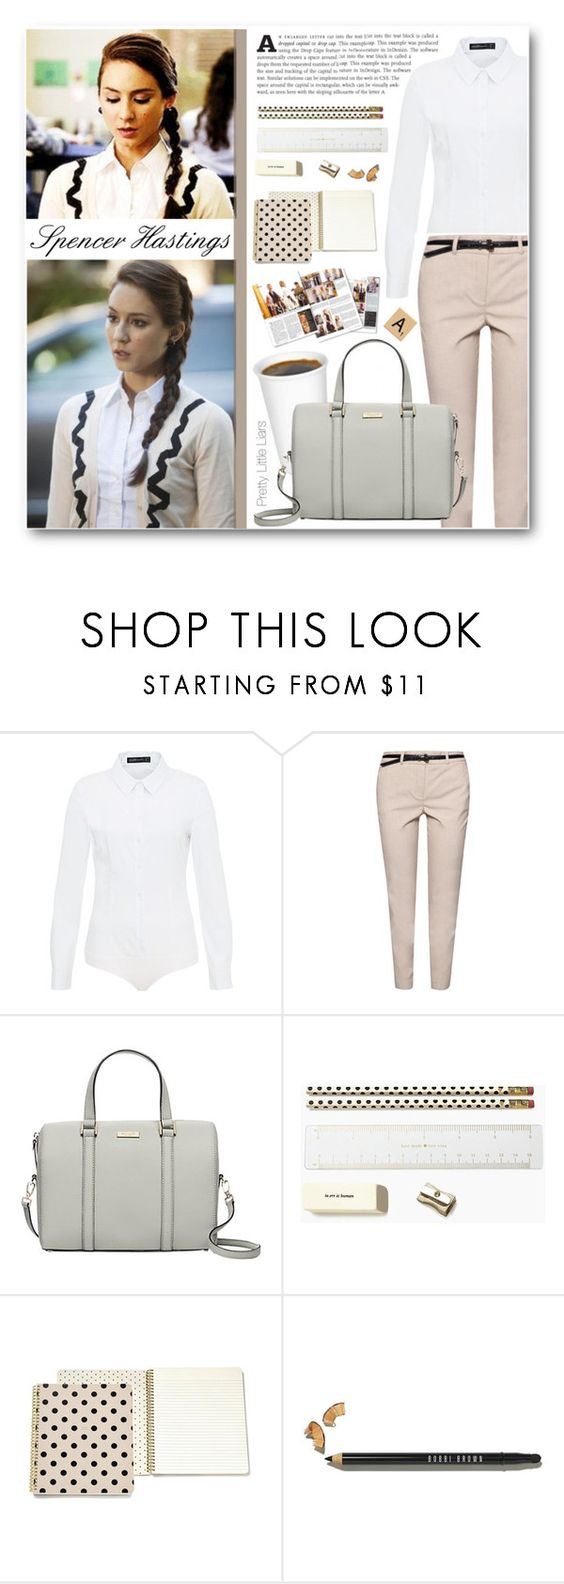 """""""Spencer"""" by becky12 ❤ liked on Polyvore featuring Hallhuber, MANGO, Kate Spade, Bobbi Brown Cosmetics, women's clothing, women, female, woman, misses and juniors"""